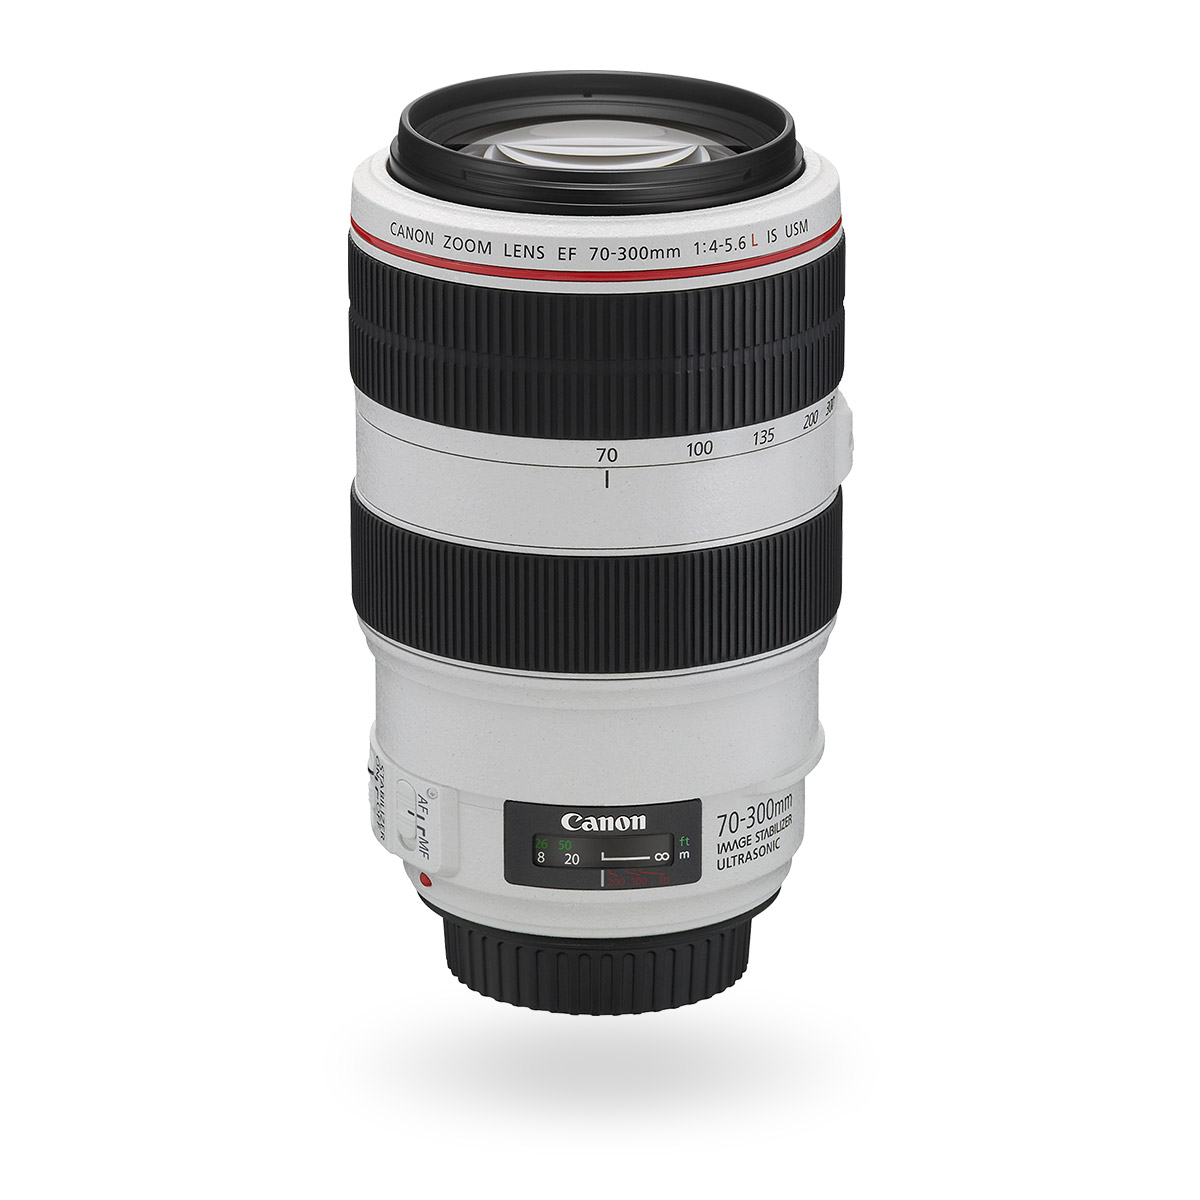 EF 70-300mm f/4-5.6L IS USM lens